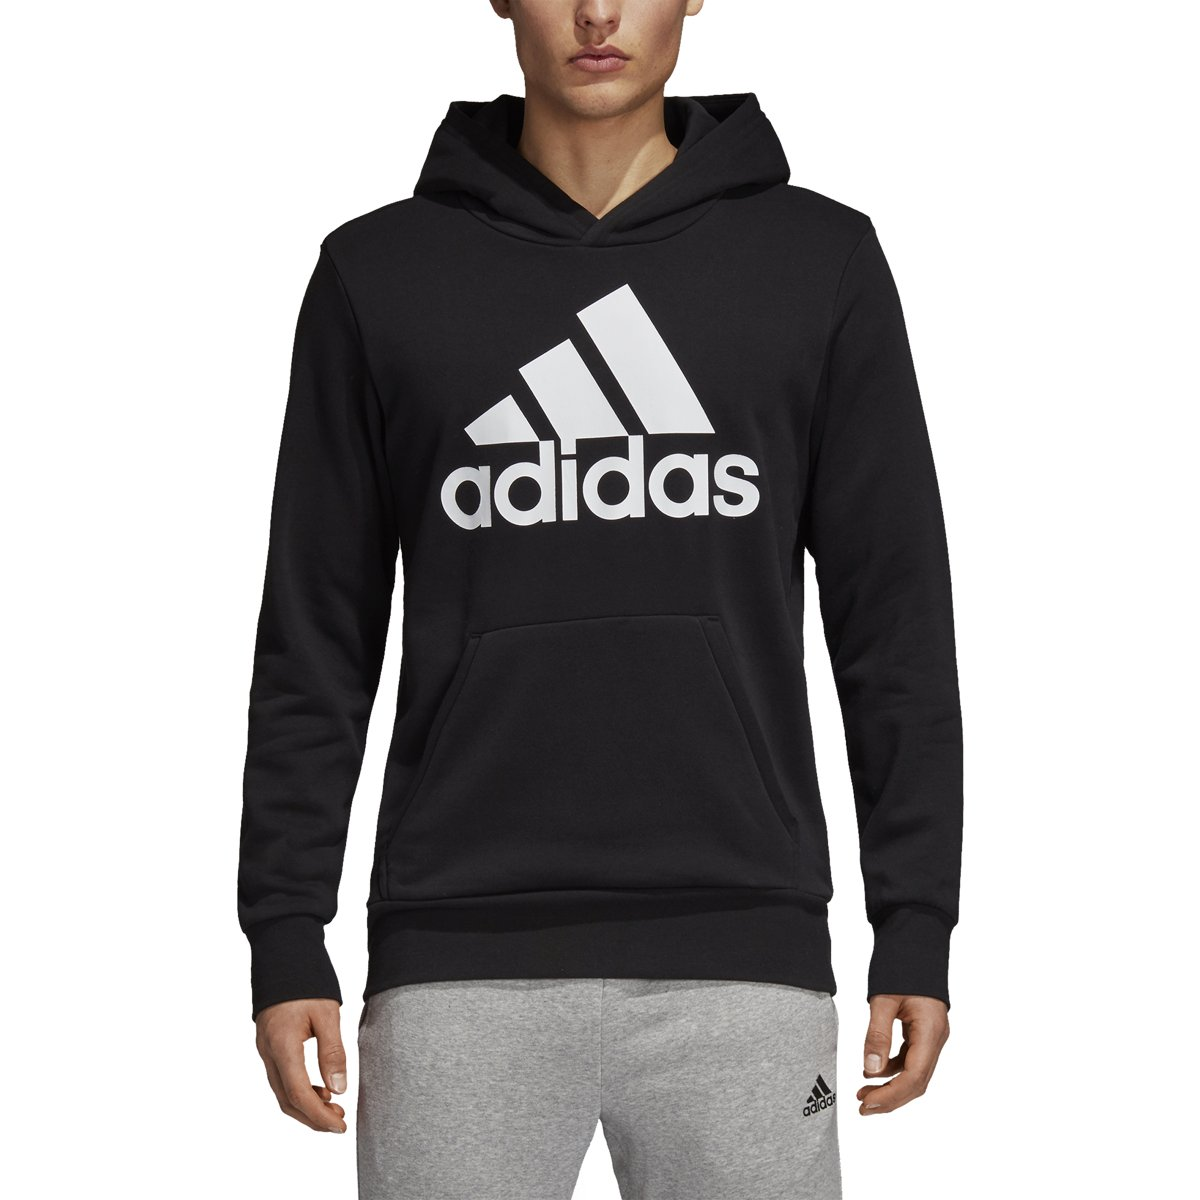 adidas Men's Athletics Essentials Linear Pullover Hoodie, Black, XX-Large by adidas